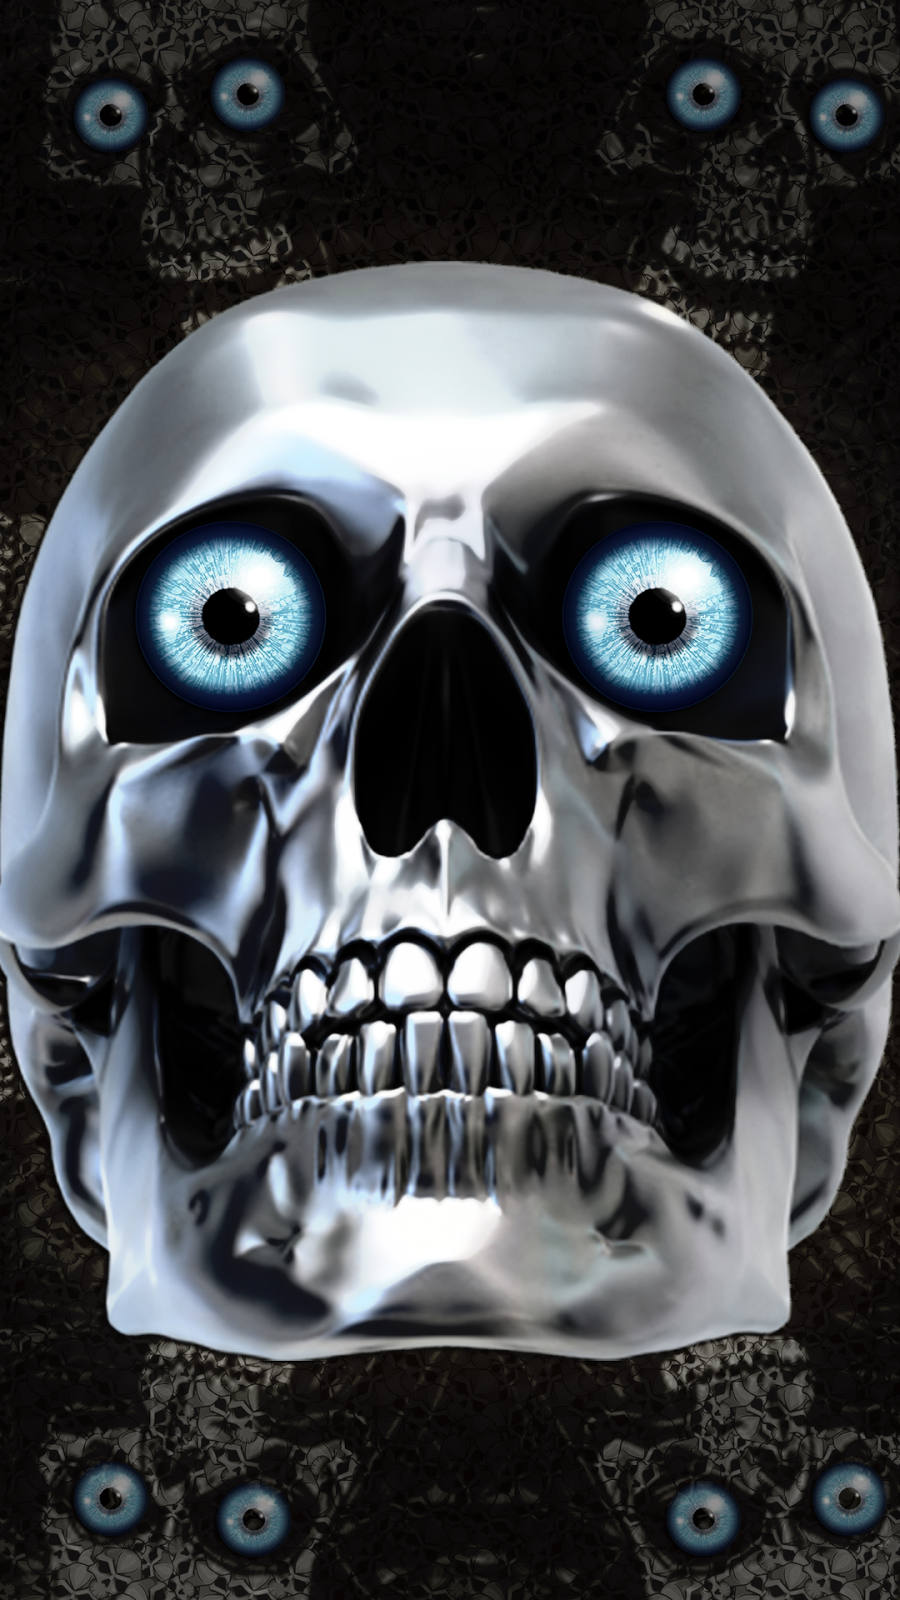 Hd wallpaper mobile phone - Skull Hd Wallpaper For Mobile Wallpapers For Mobile Phones Wallpaper Zone